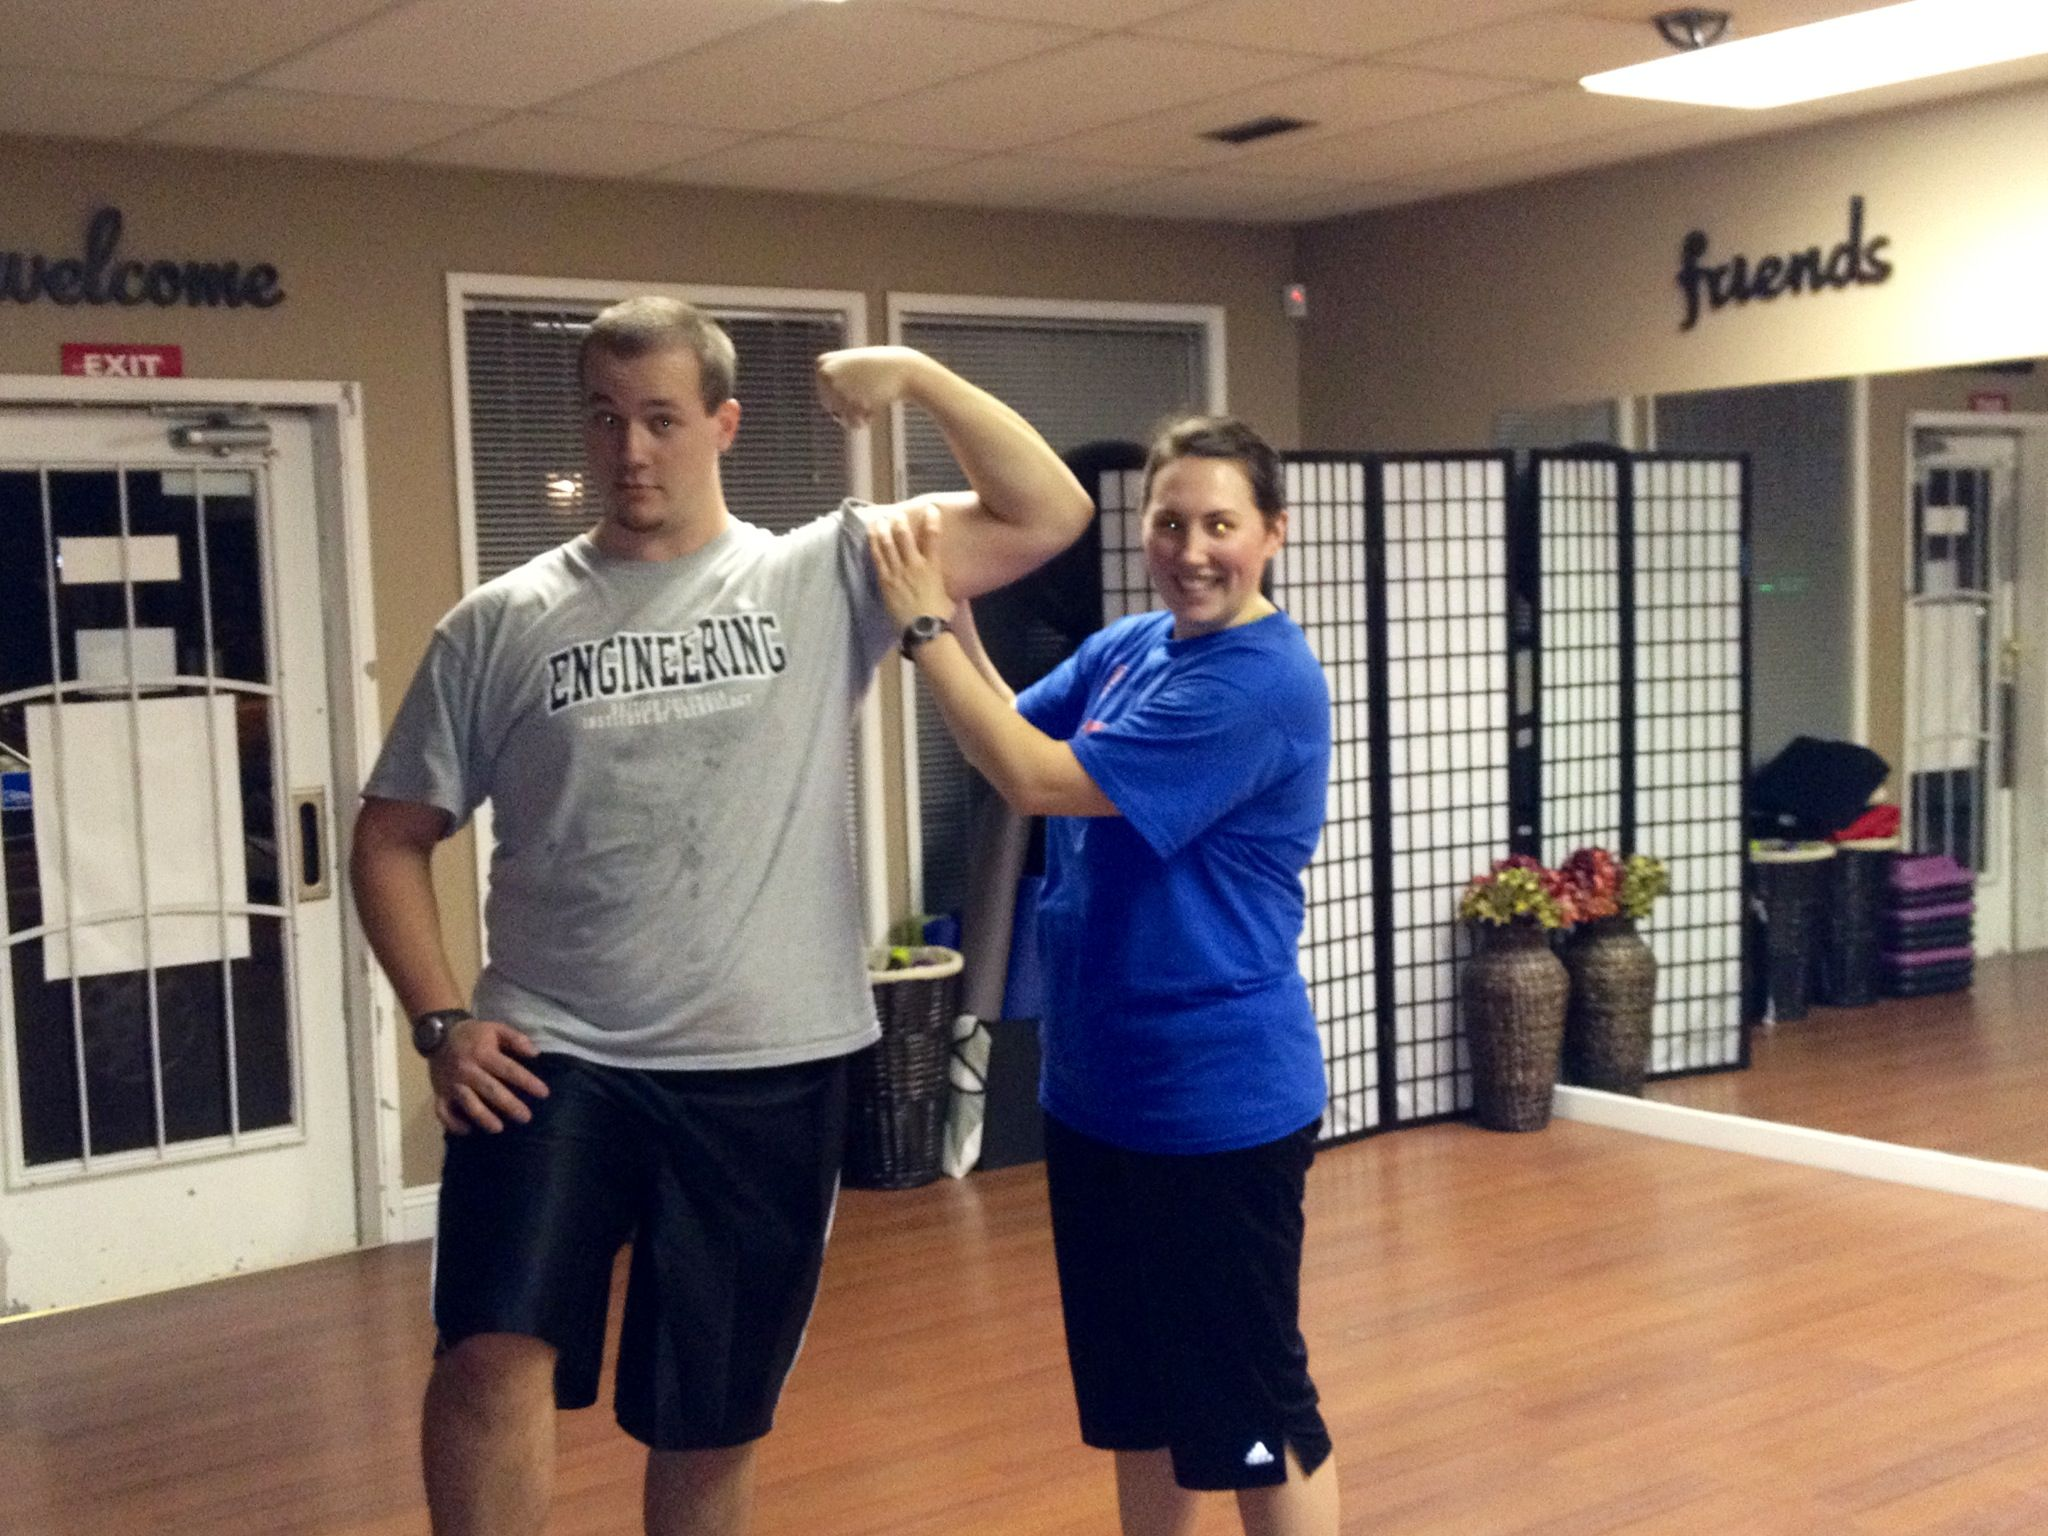 Couples Personal Training Available At Just For You Wellness Studio